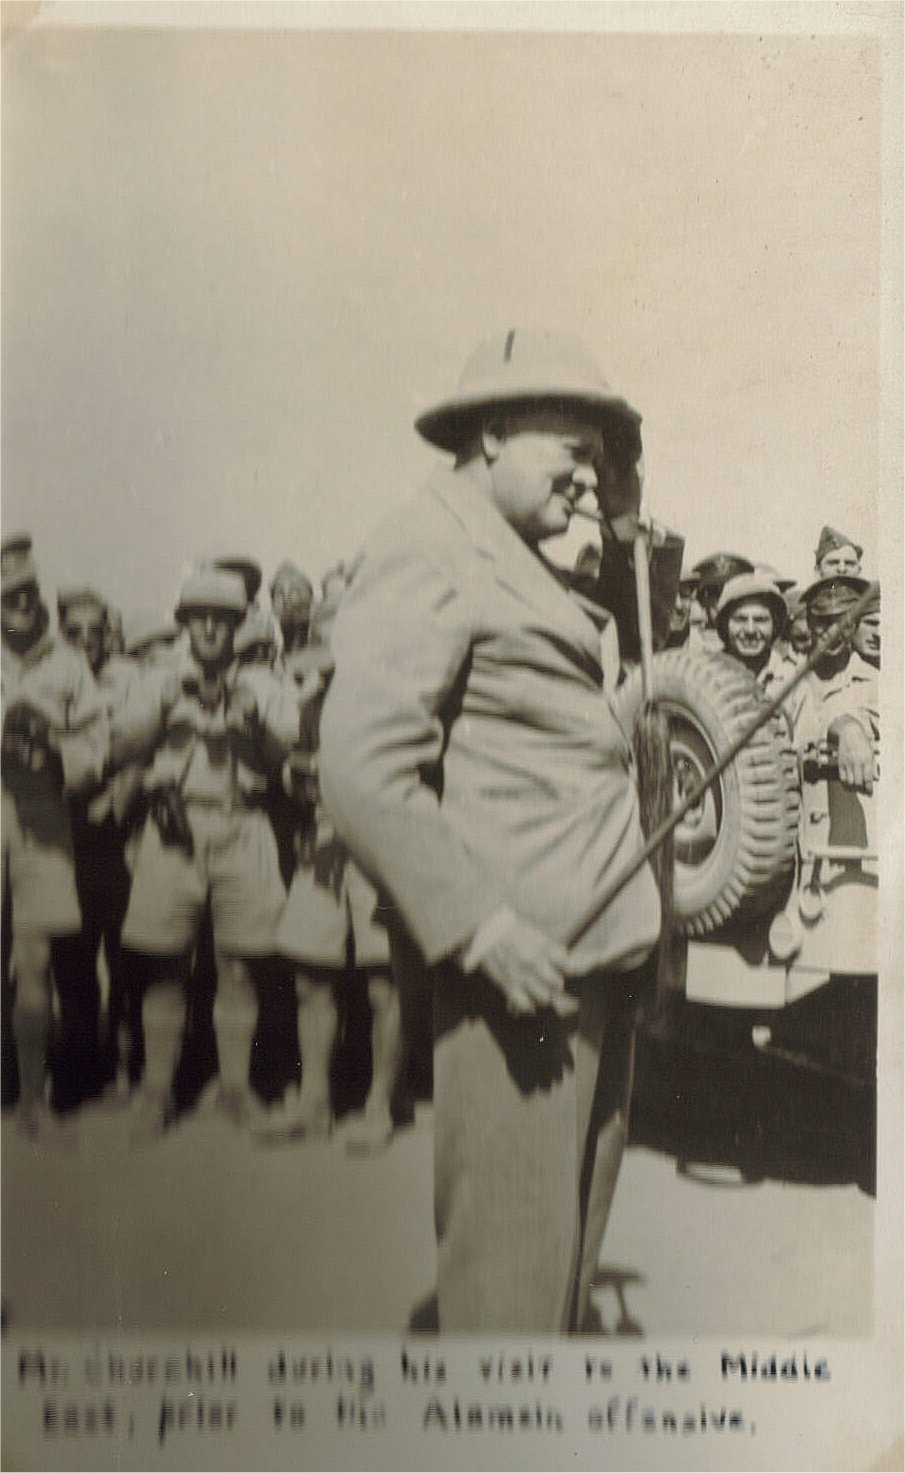 Churchill visit to ME prior to Alamein offfensive